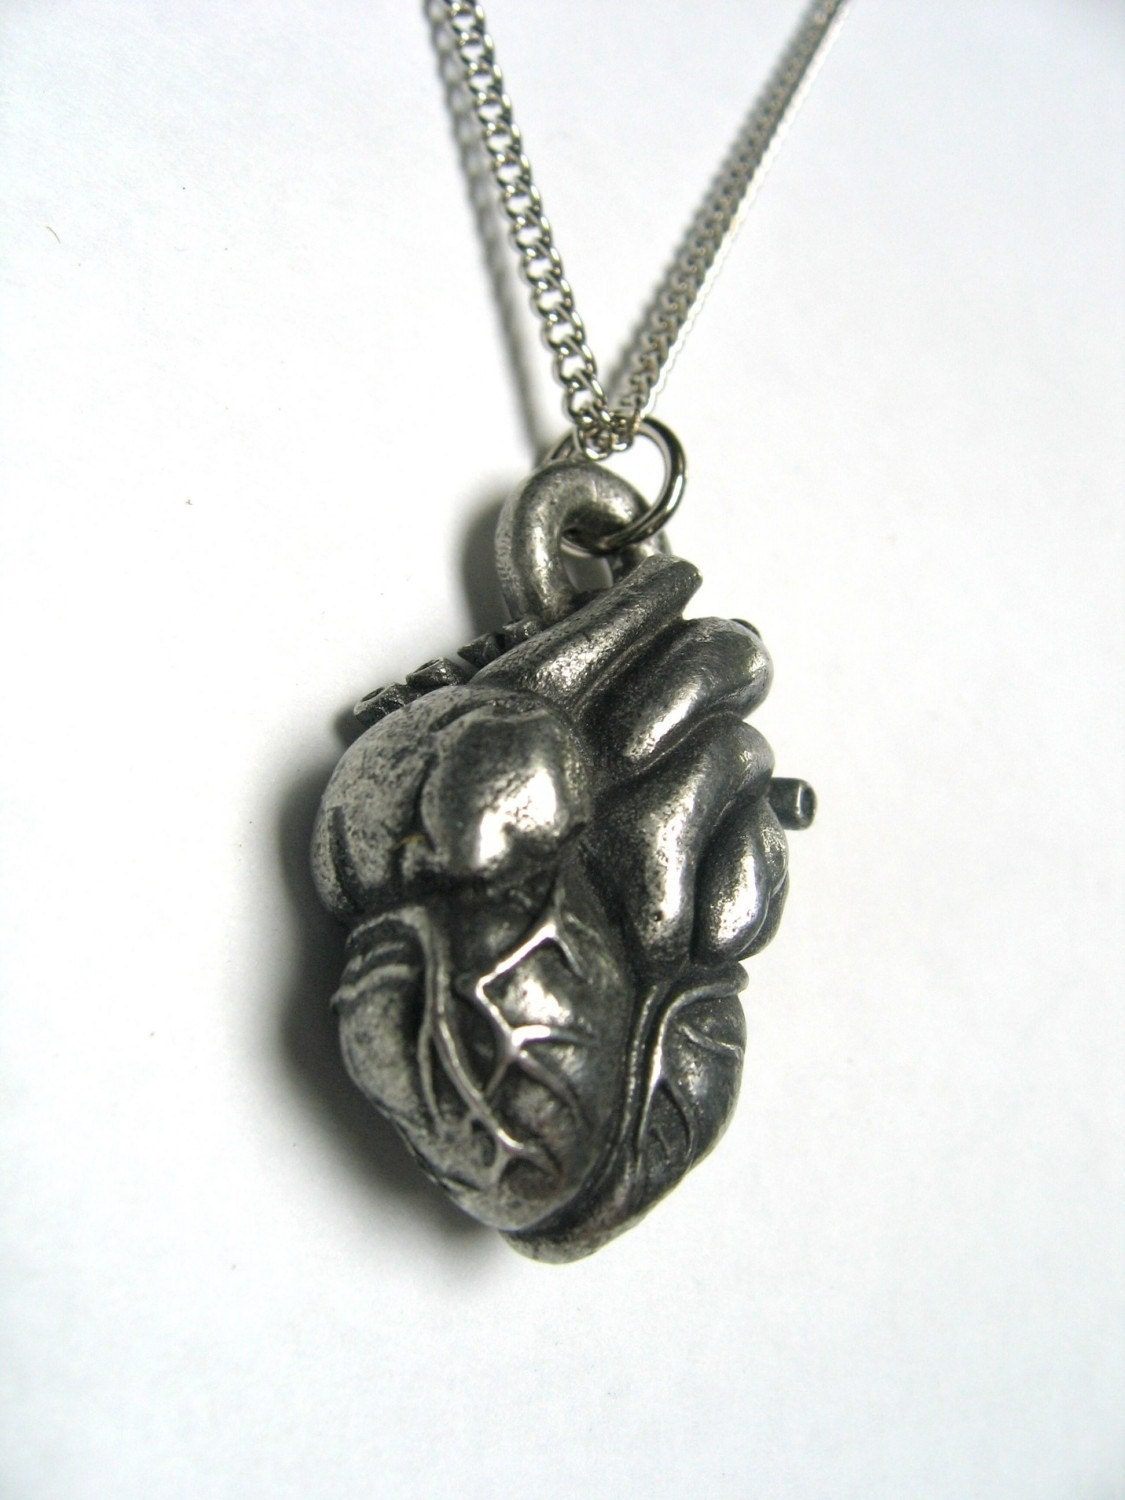 Antique Silver Anatomical Heart Necklace - Moon Raven Designs